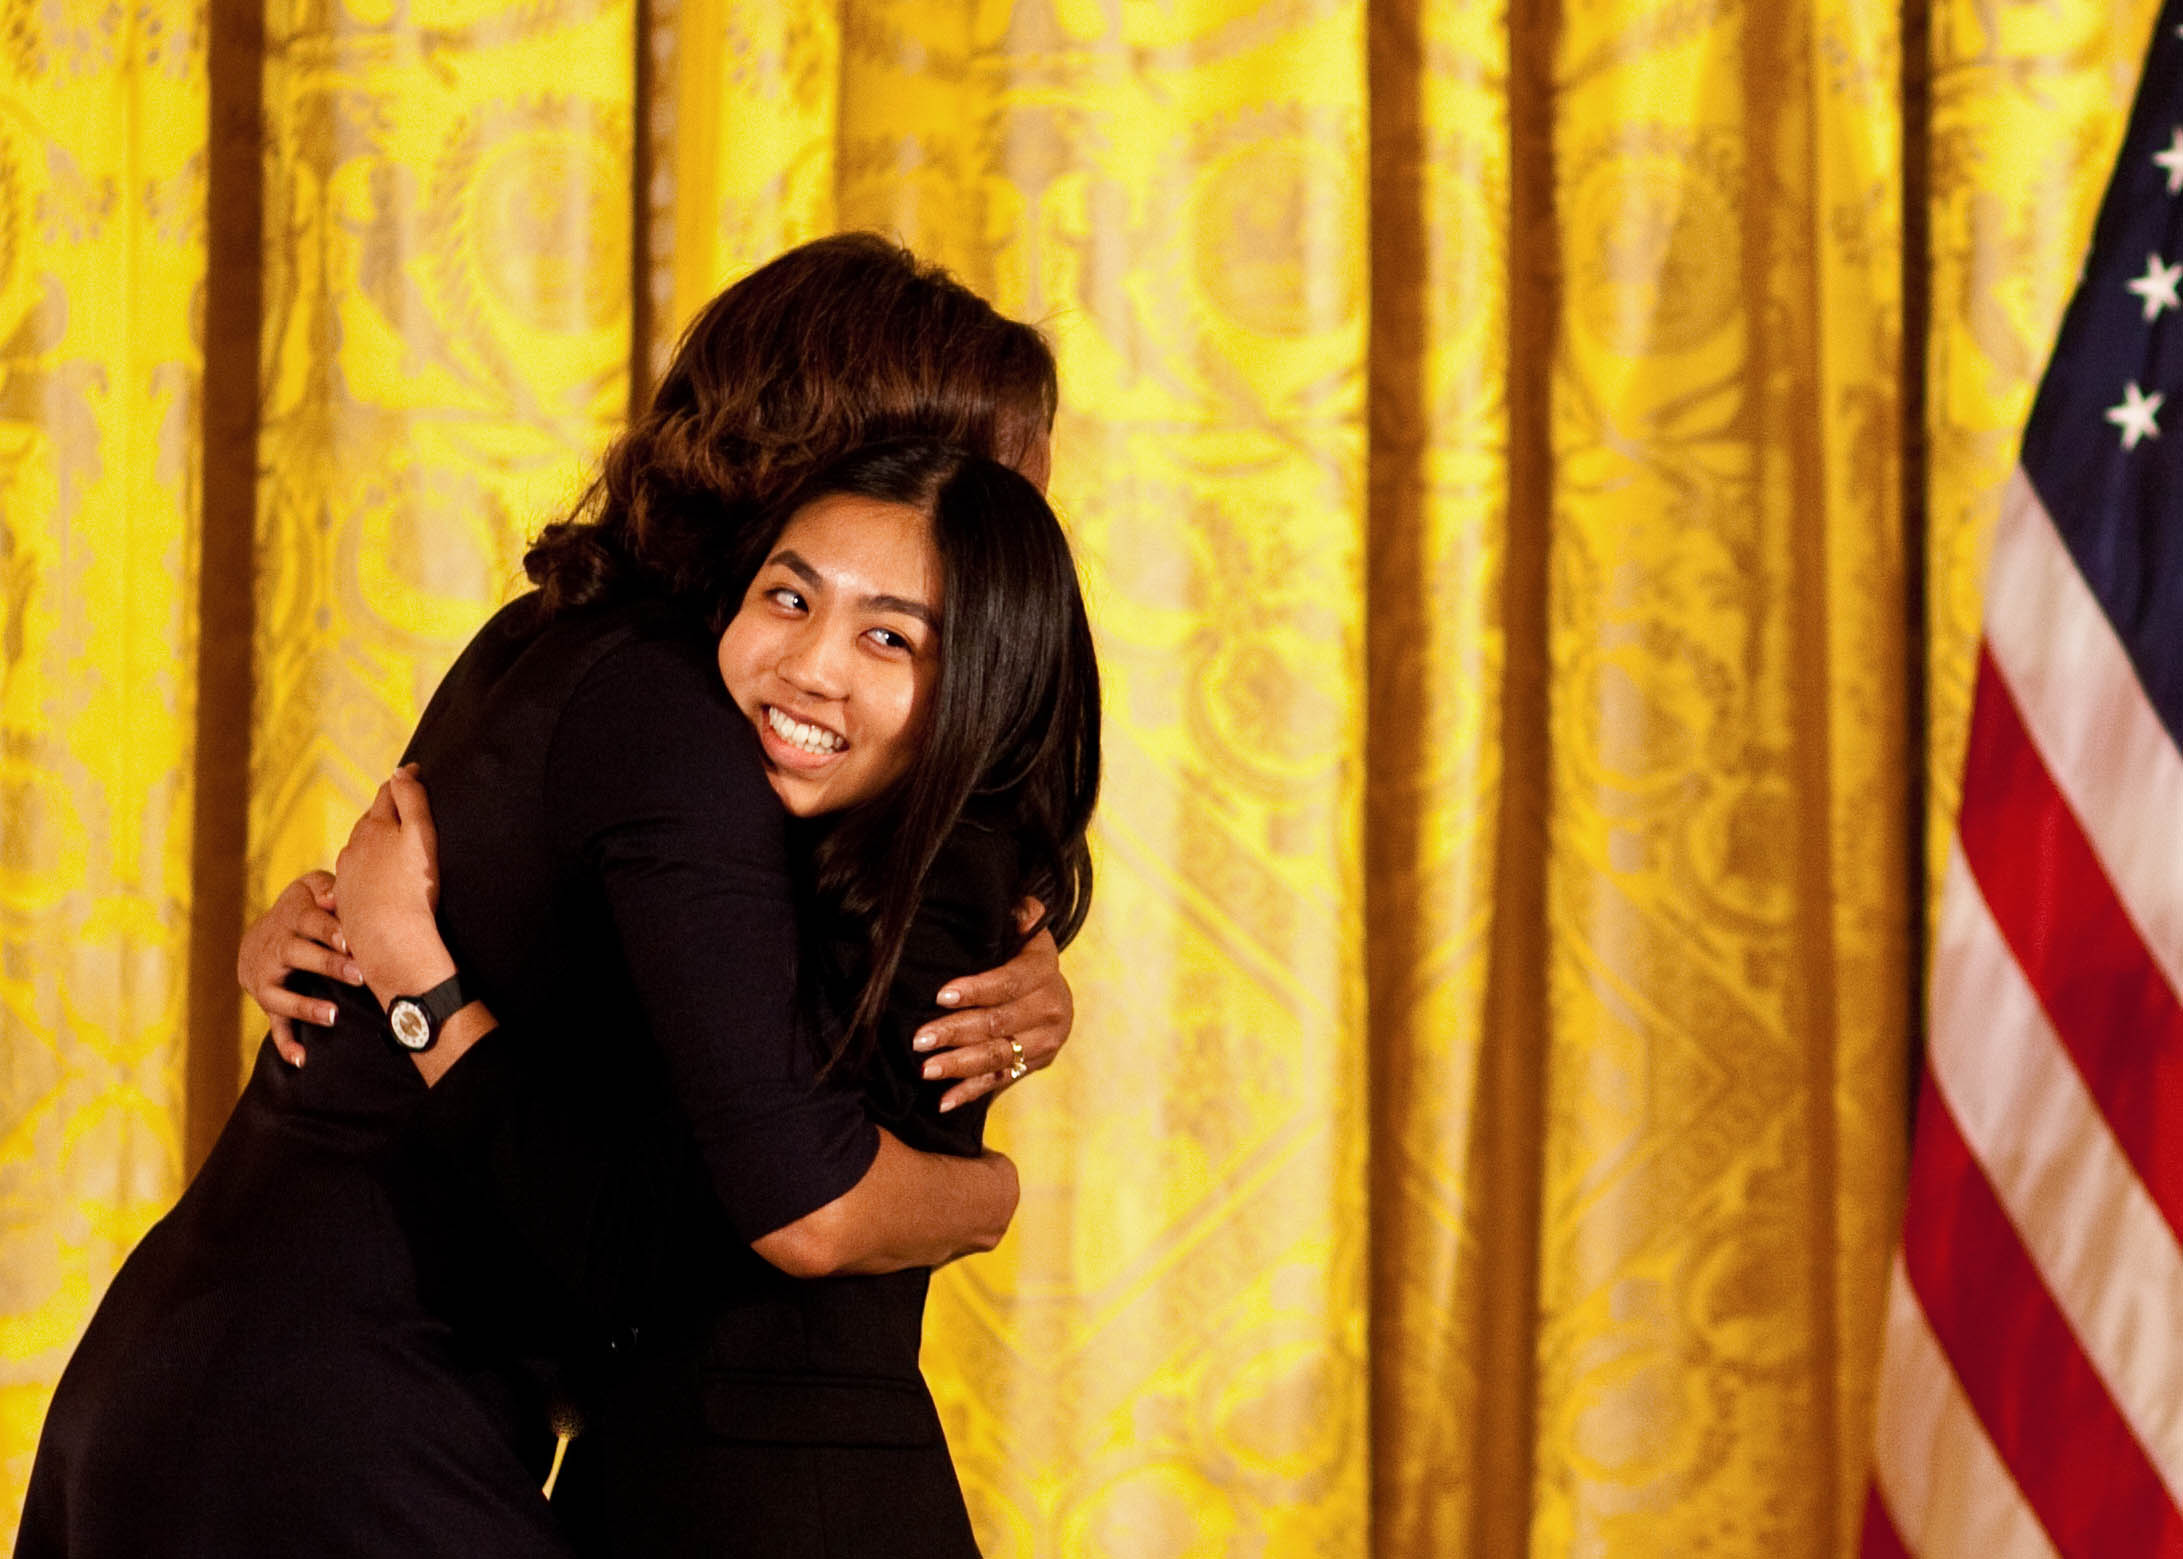 WriteGirl mentee Jackie, 16, sharing a hug with the first lady